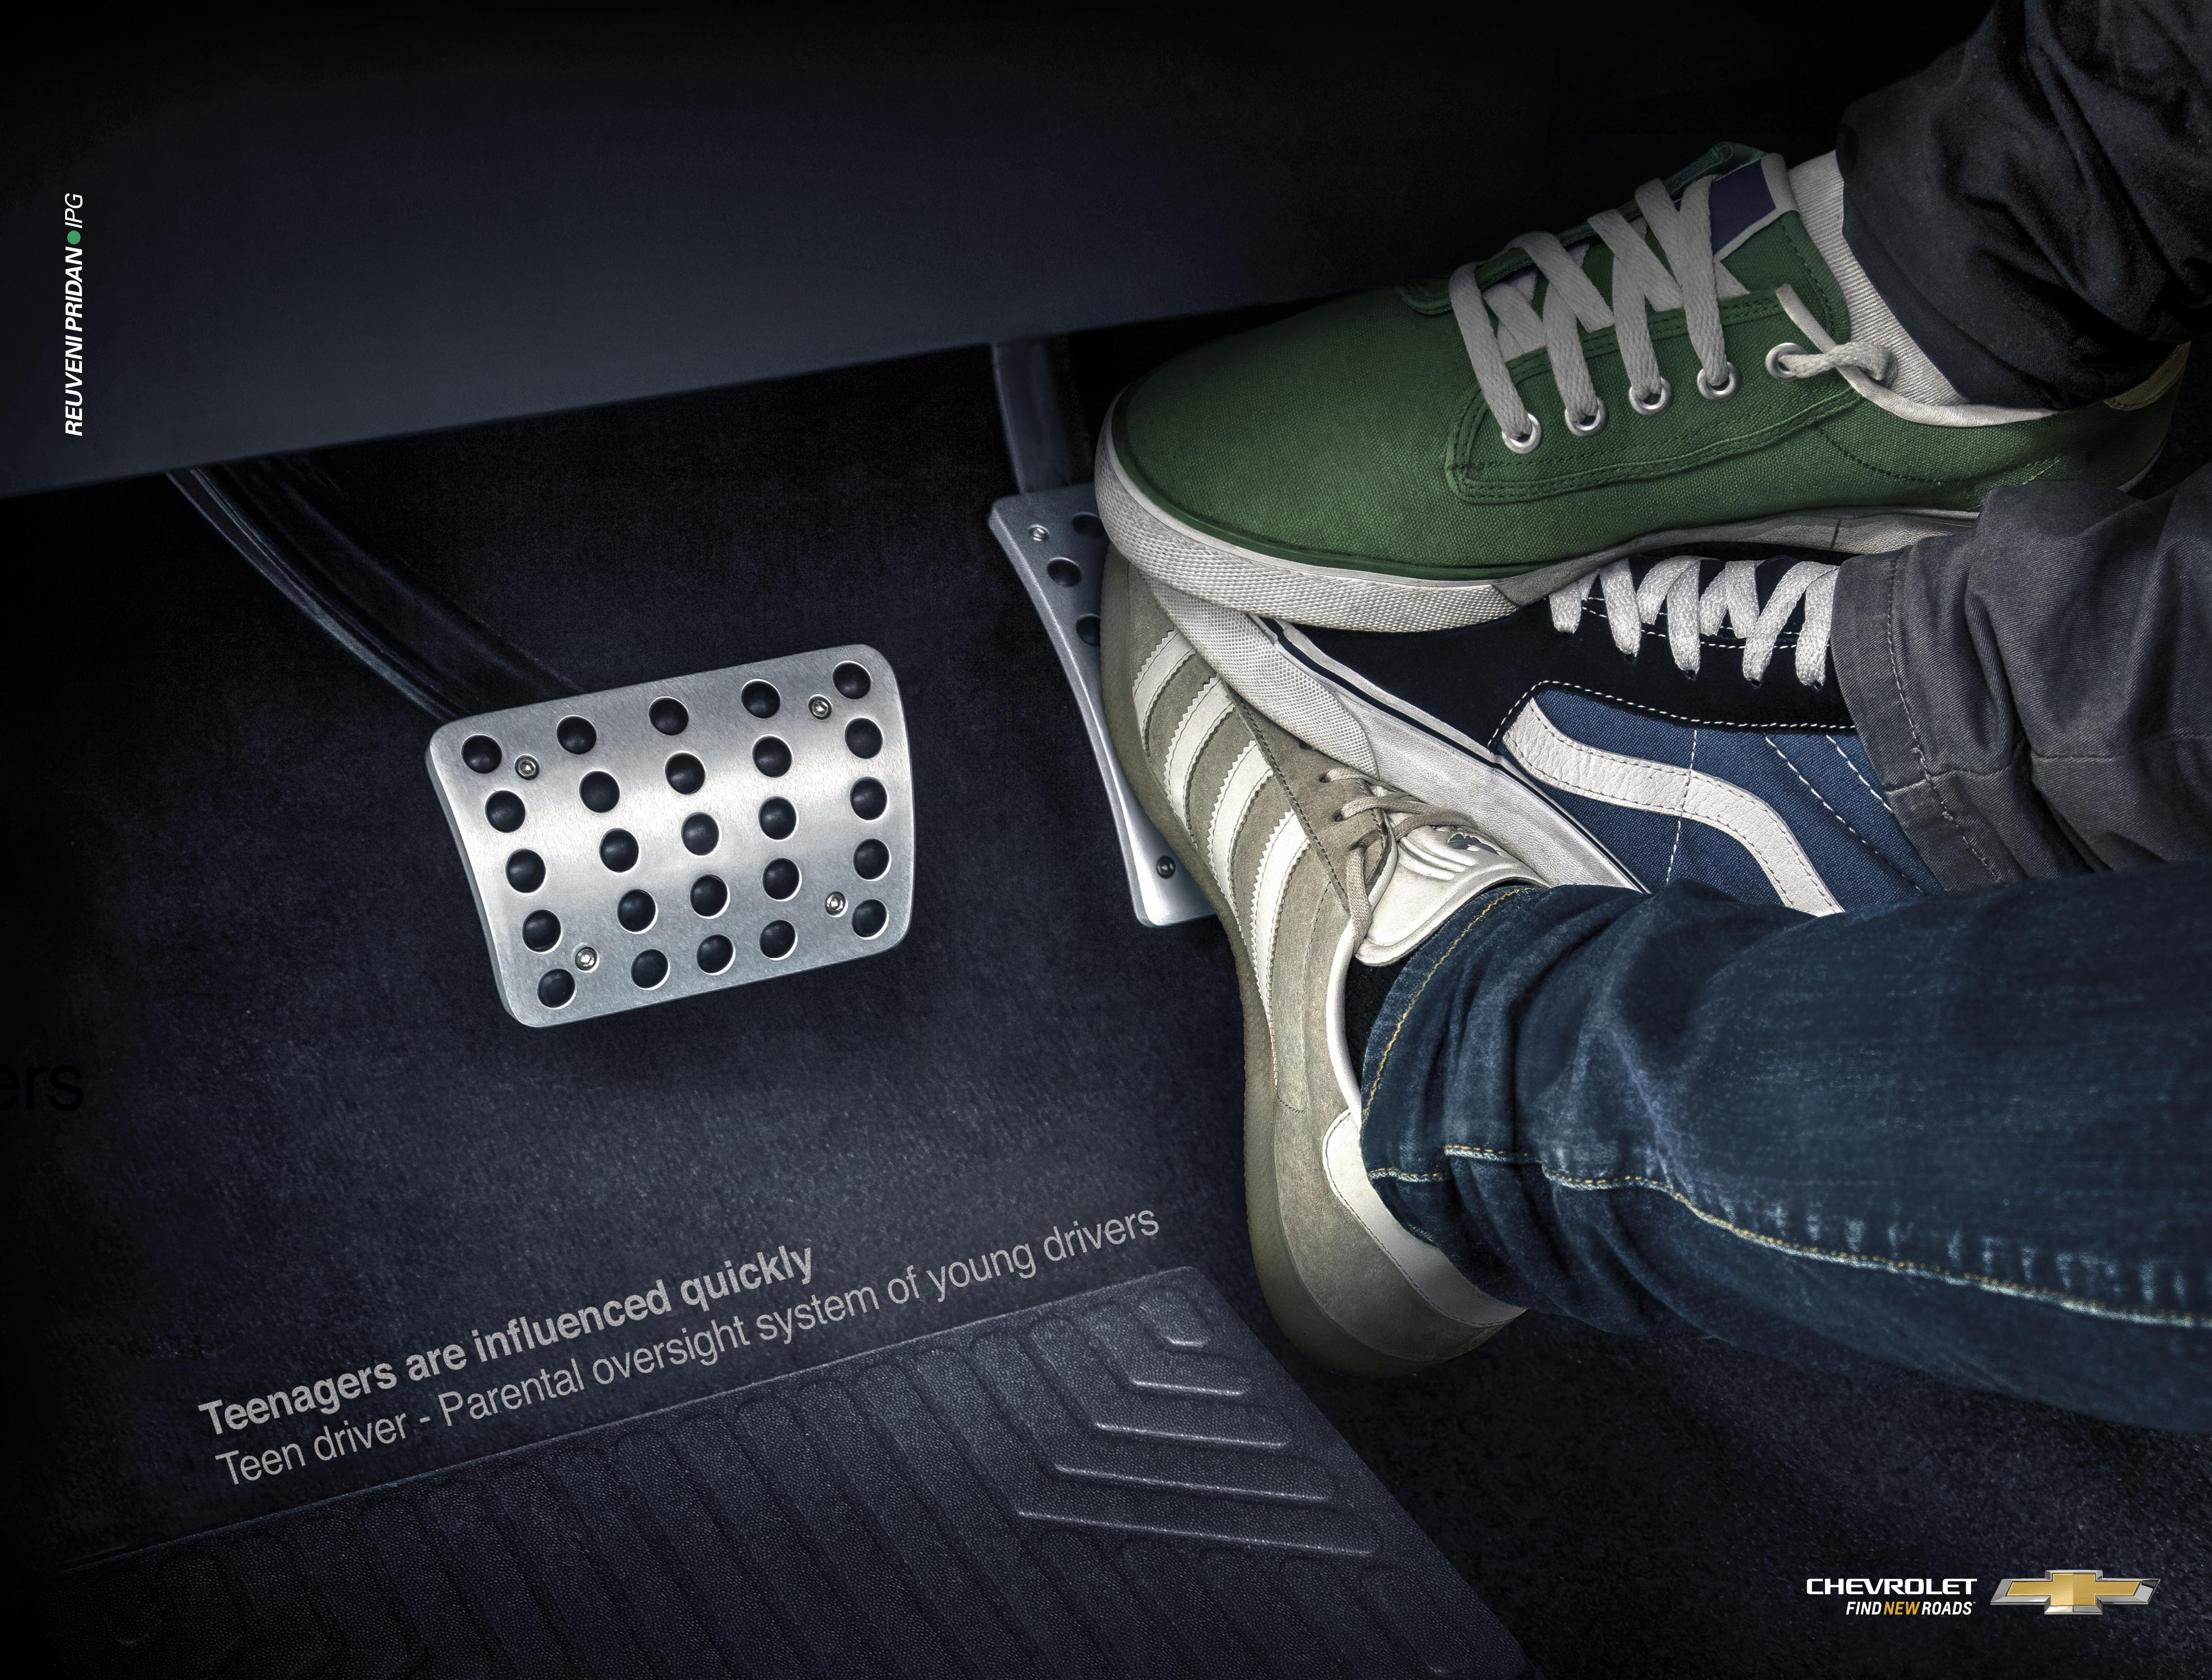 Chevrolet Print Ad - Accelerator